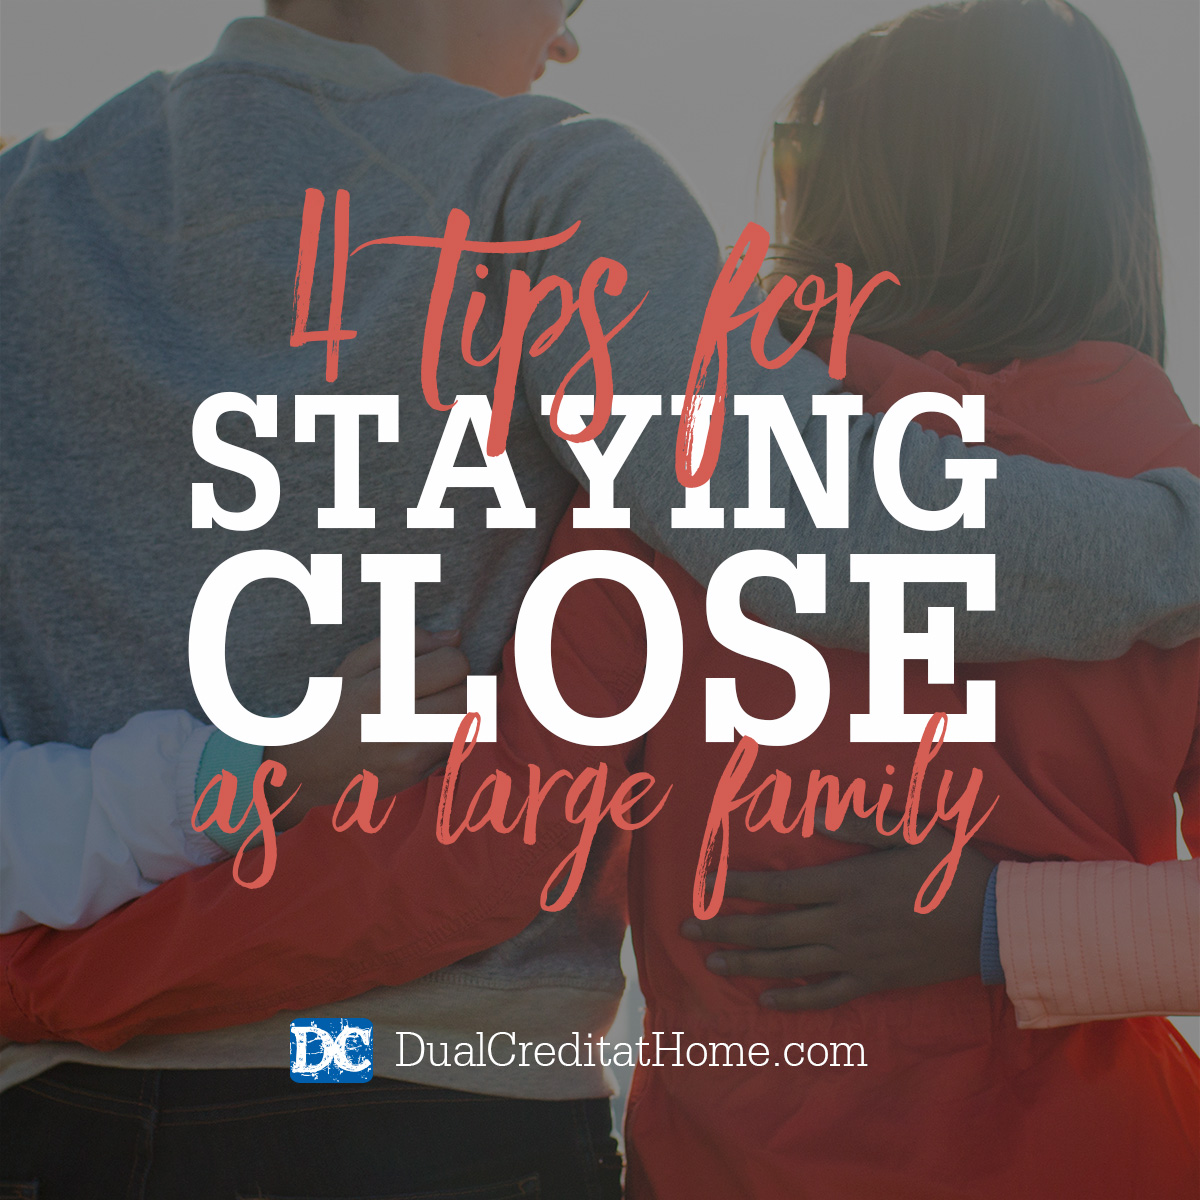 Four Tips for Staying Close as a Large Family